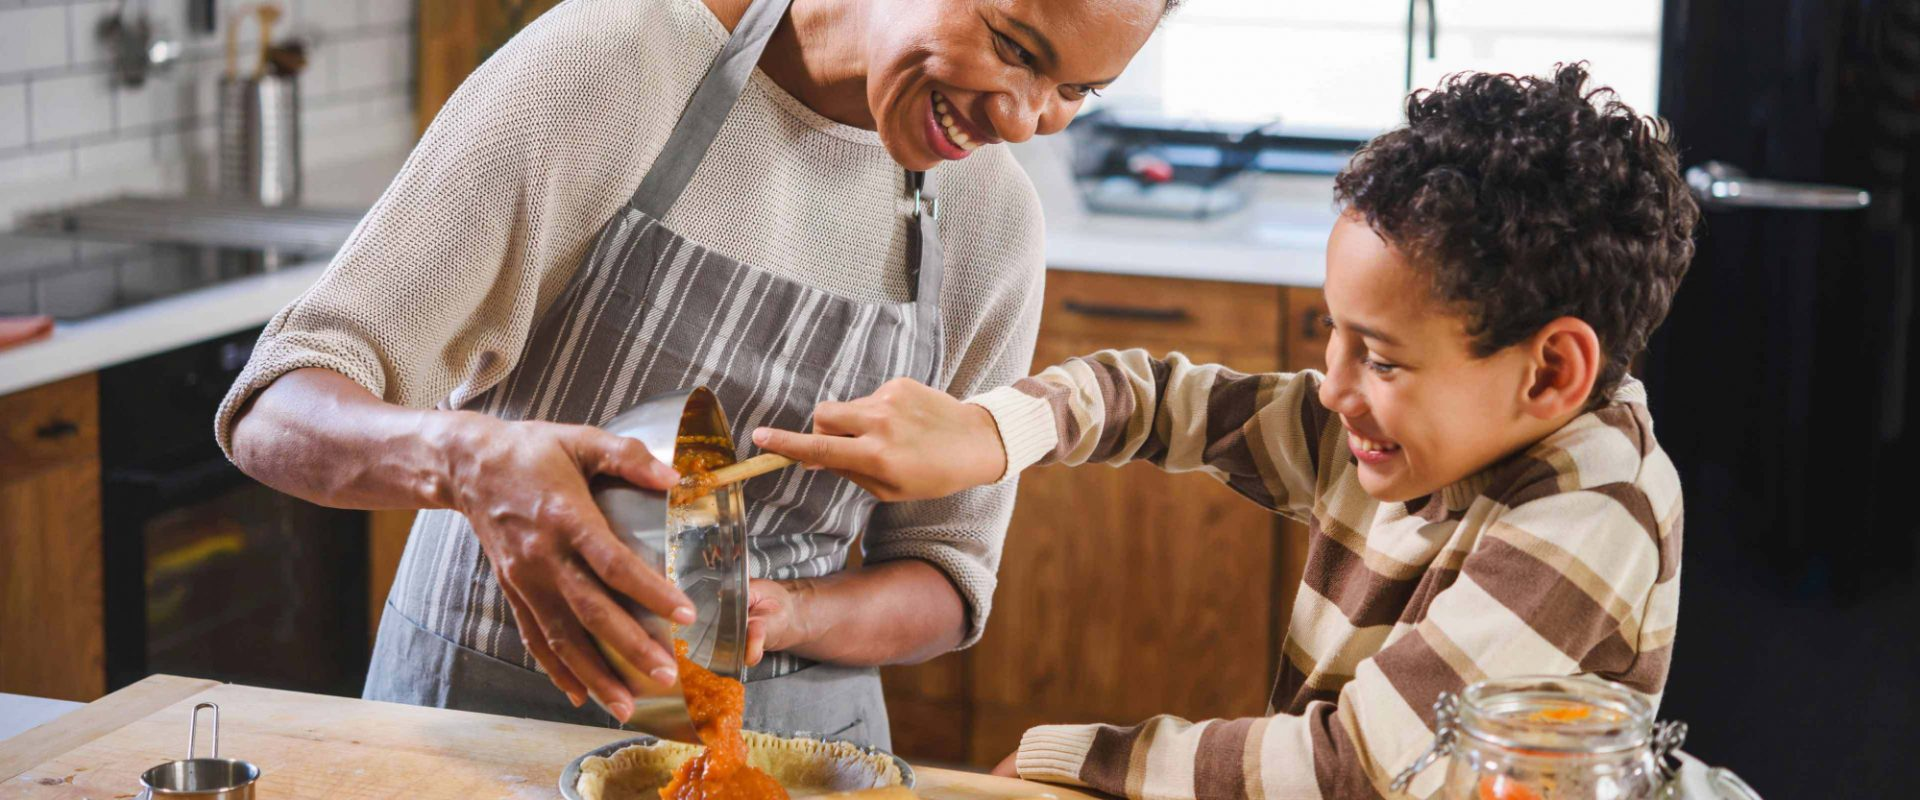 A mother and her young son in their kitchen, baking.